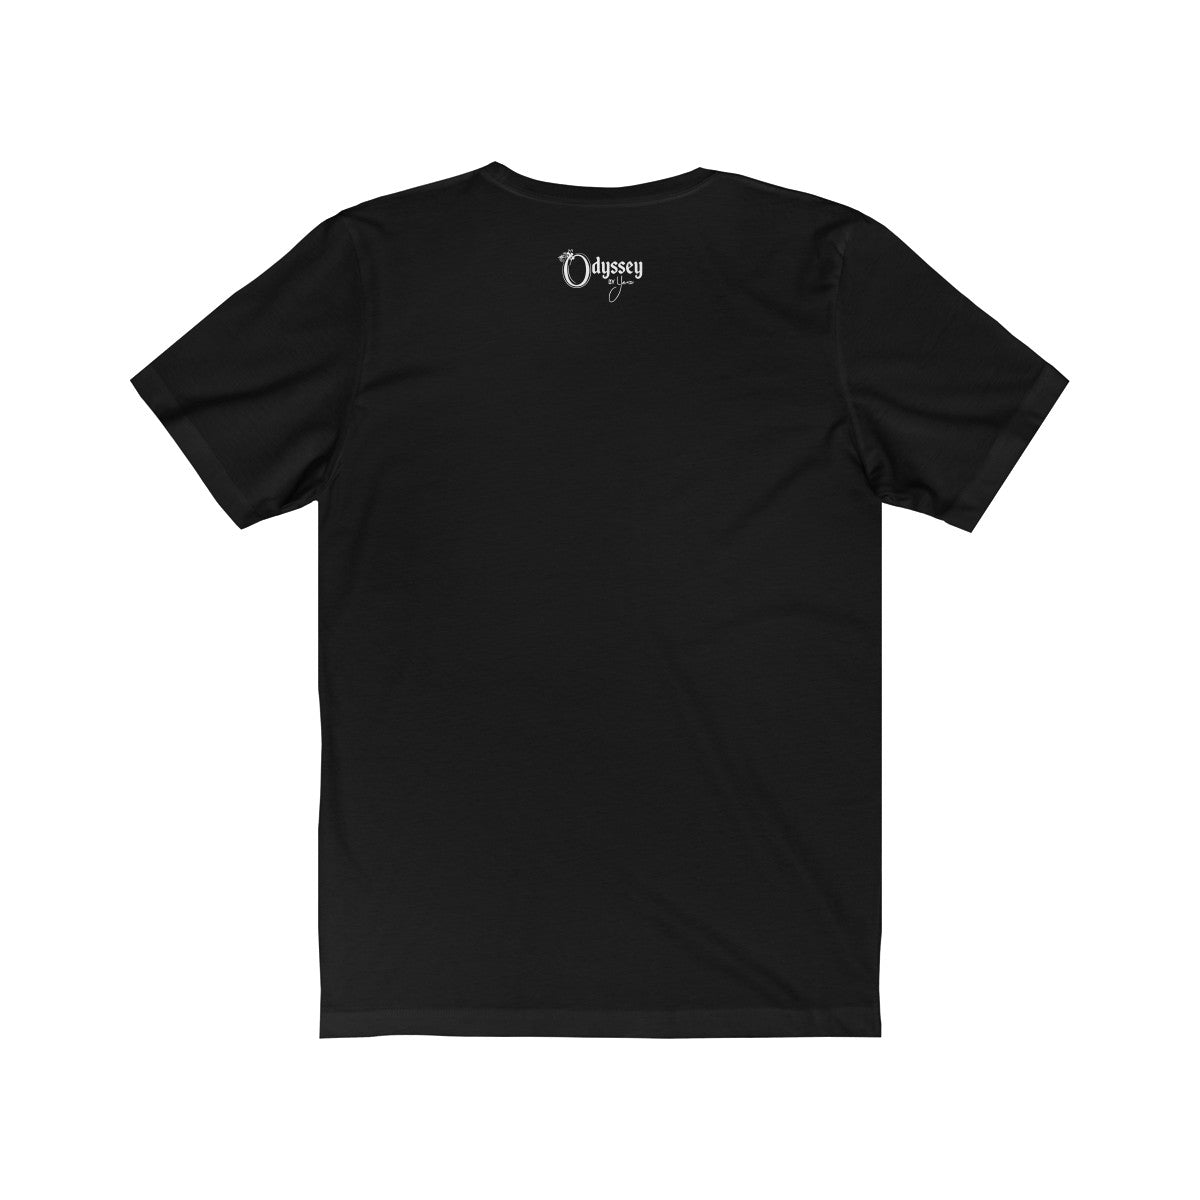 Odyssey Saved By Grace Men's T-shirt - Dark